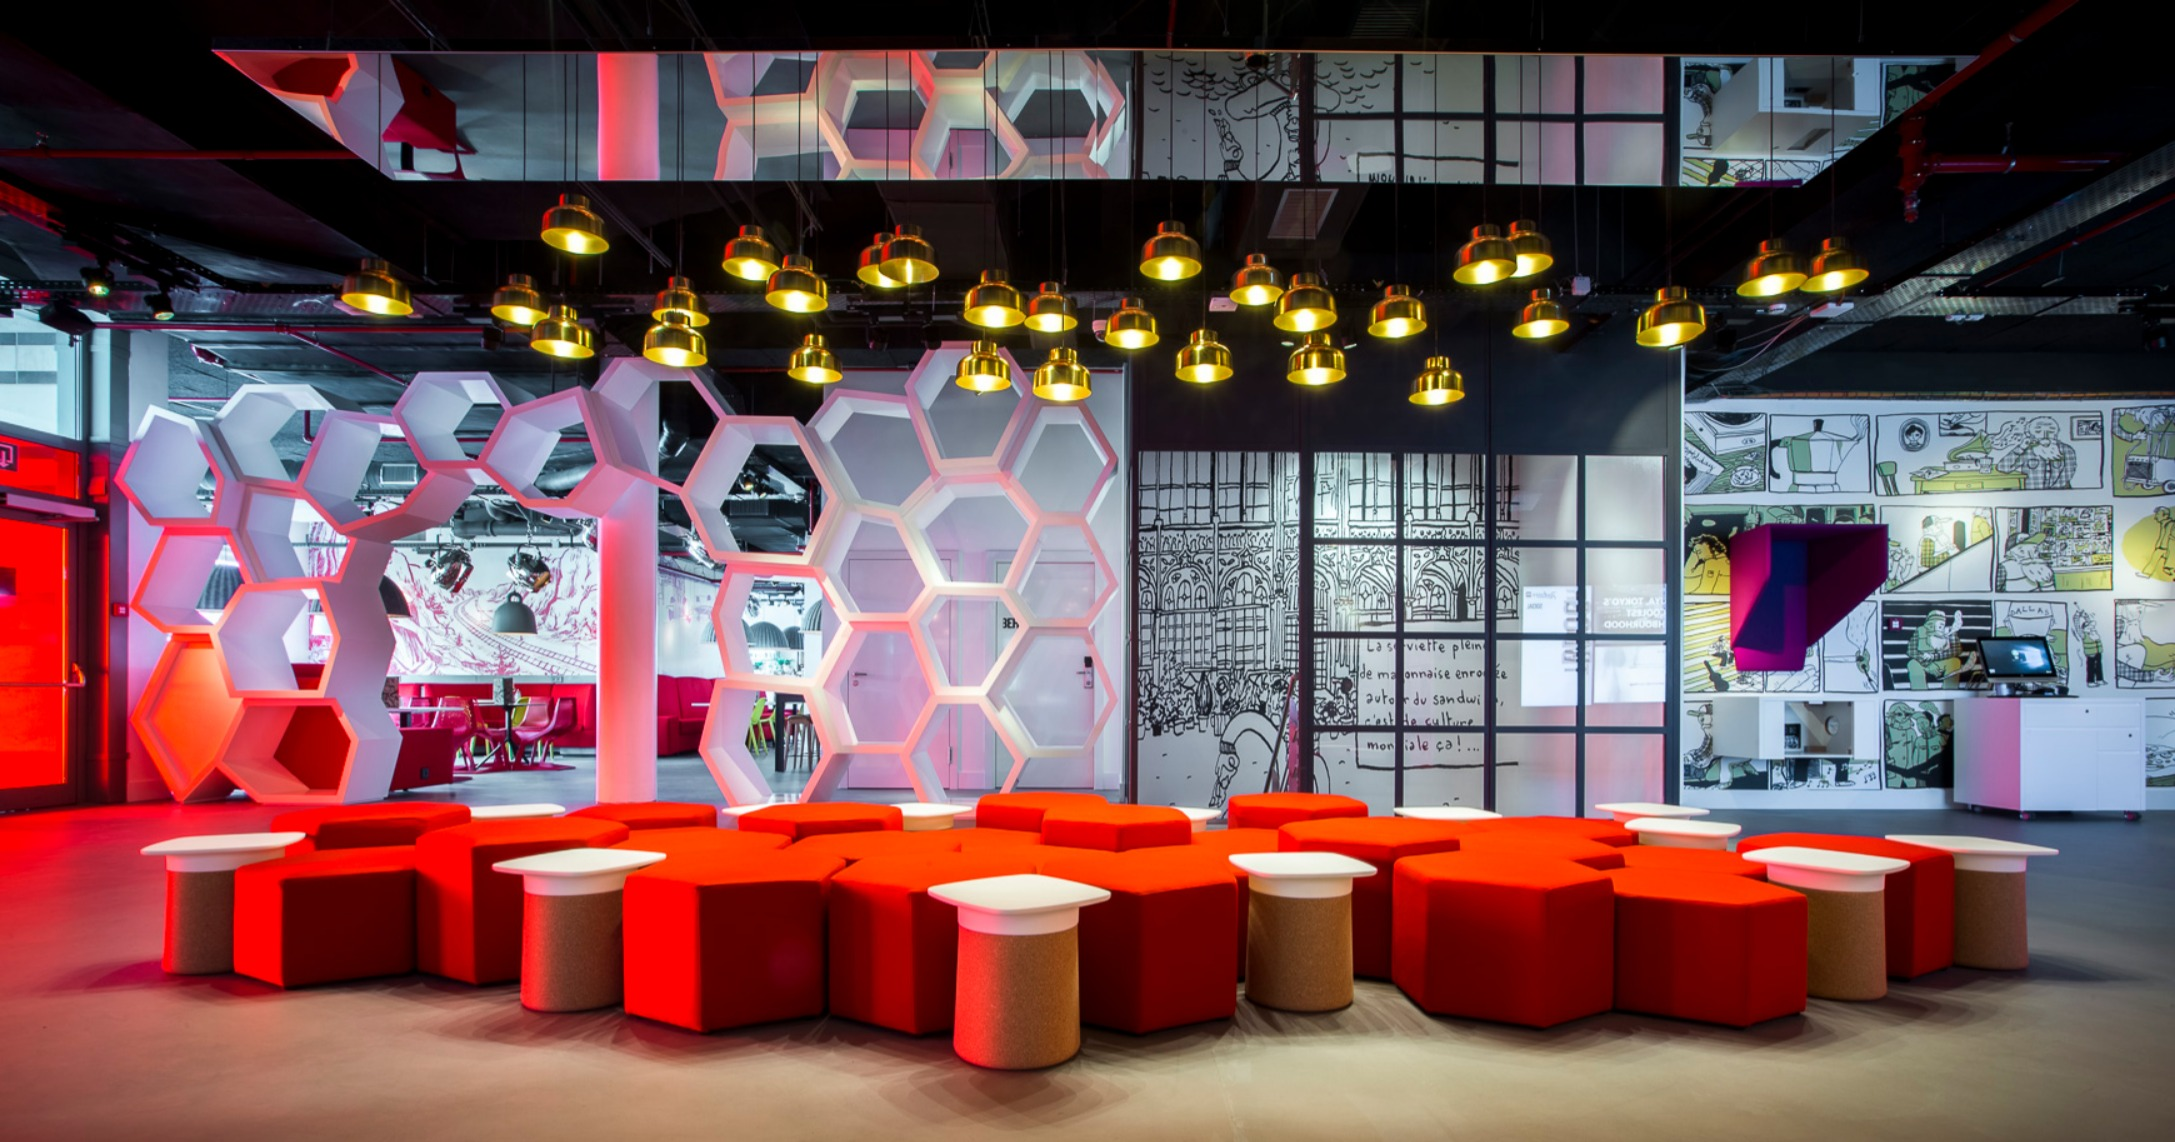 How Radisson Red is appealing to millennials by breaking the stuffy hotel stereotype